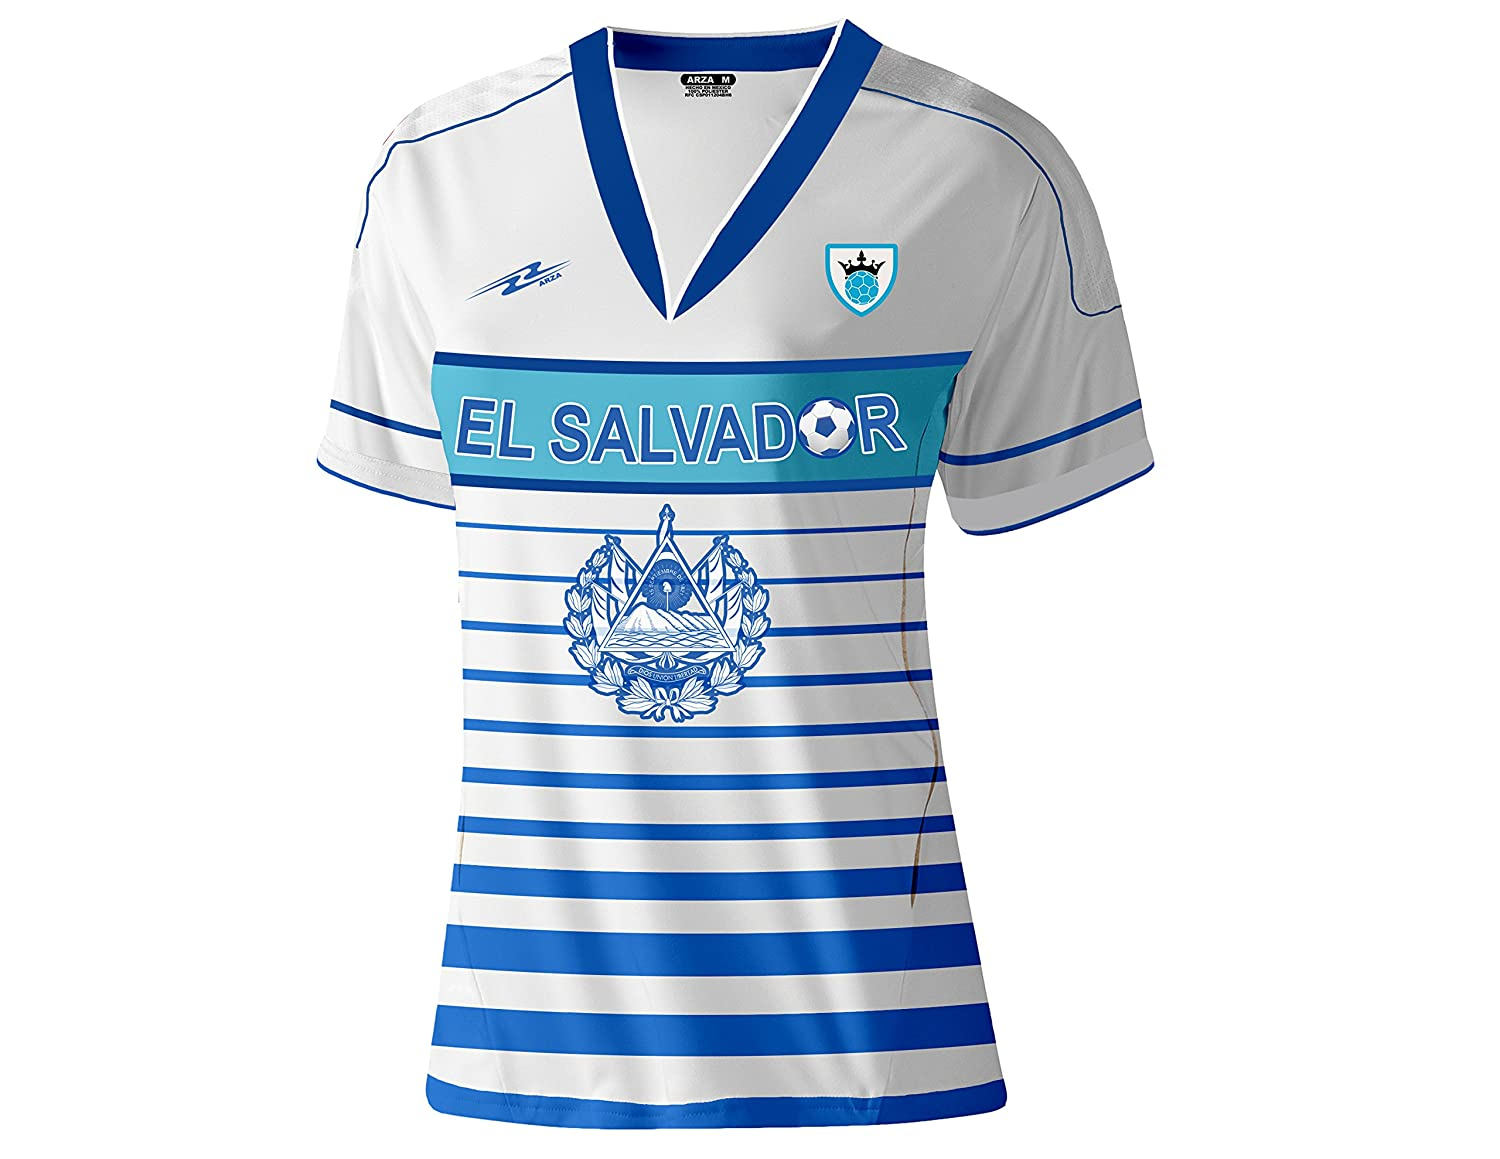 7795f5cc1 ... Amazon.com El Salvador Slim Women Soccer Jersey Exclusive Design  Clothing ...